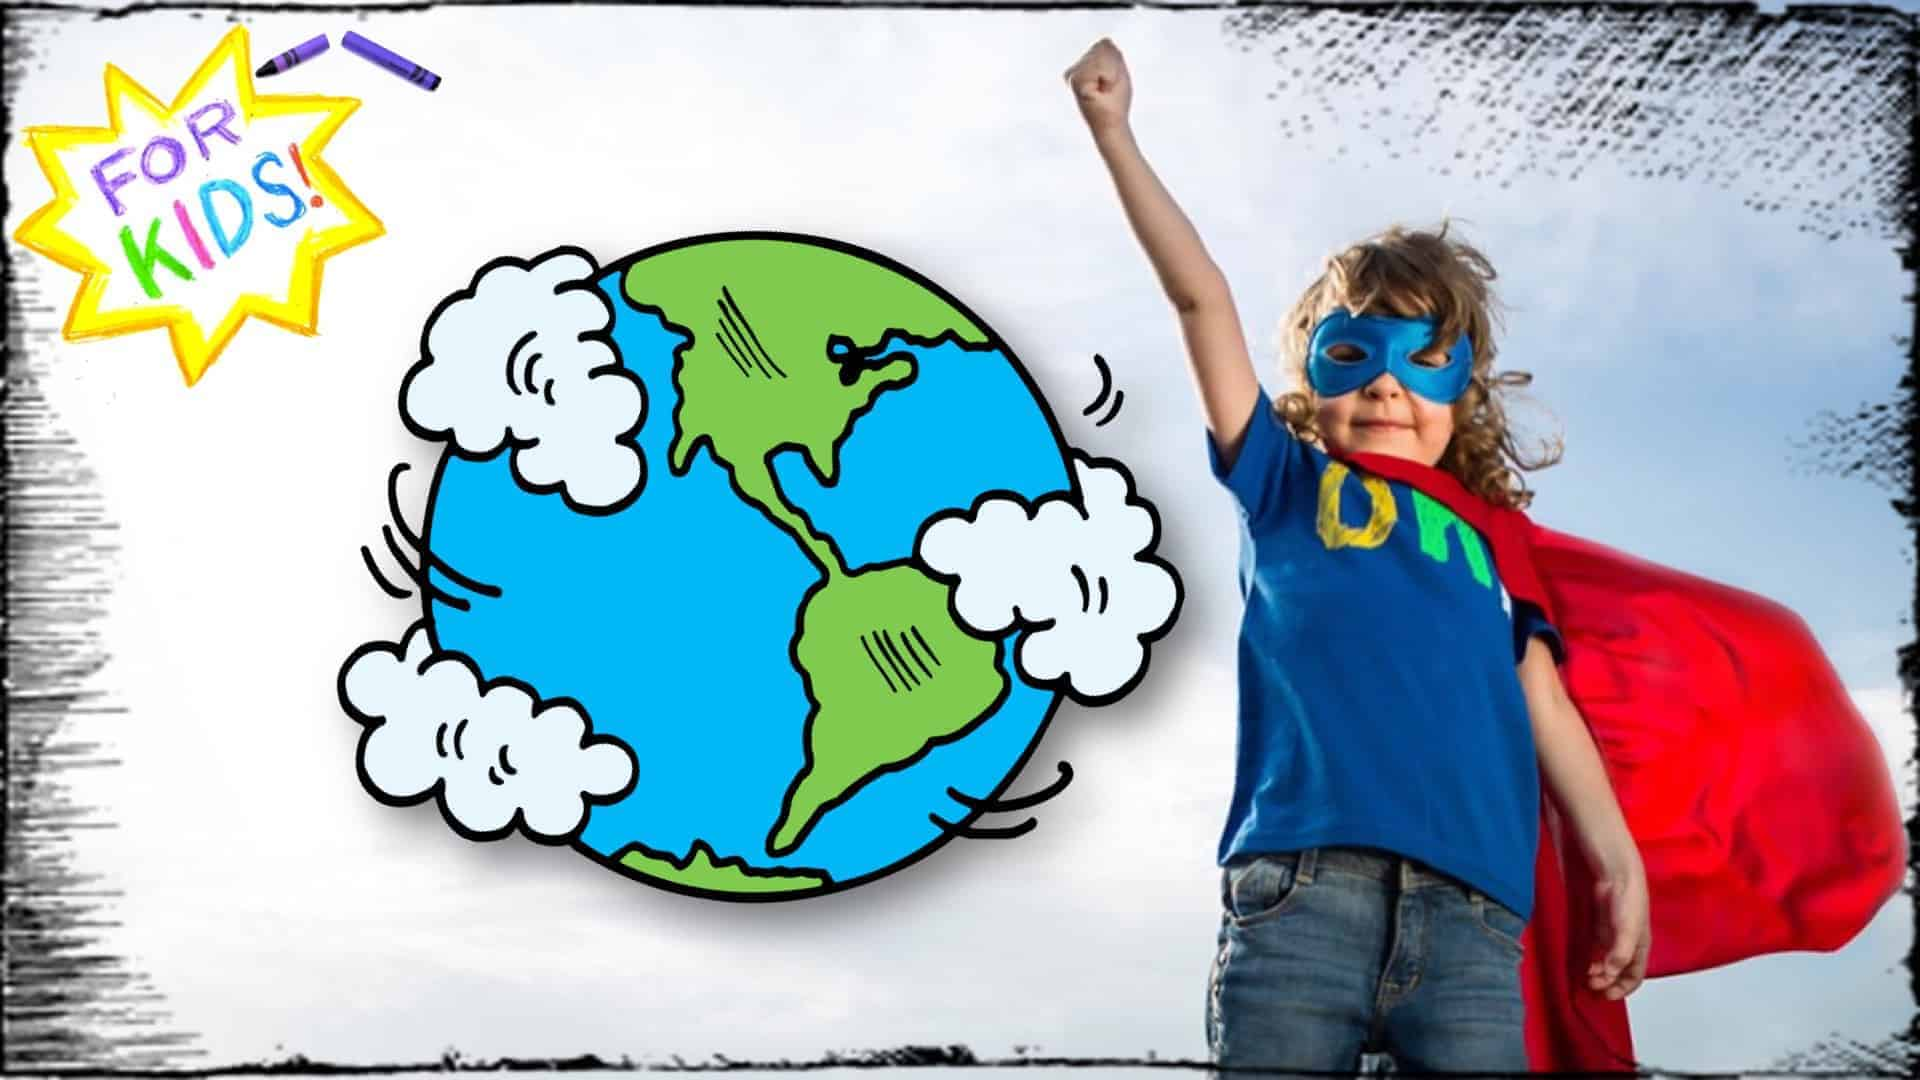 """A white and yellow star is shown in the top left-hand corner. The appearance is one rendered in crayon. Across the center of the star are the words """"For Kids"""". In the center of the image, there is a cartoon rendering of the earth and to the right, is a child dressed up as a super hero, complete with cape with their arm in the air, fist closed."""